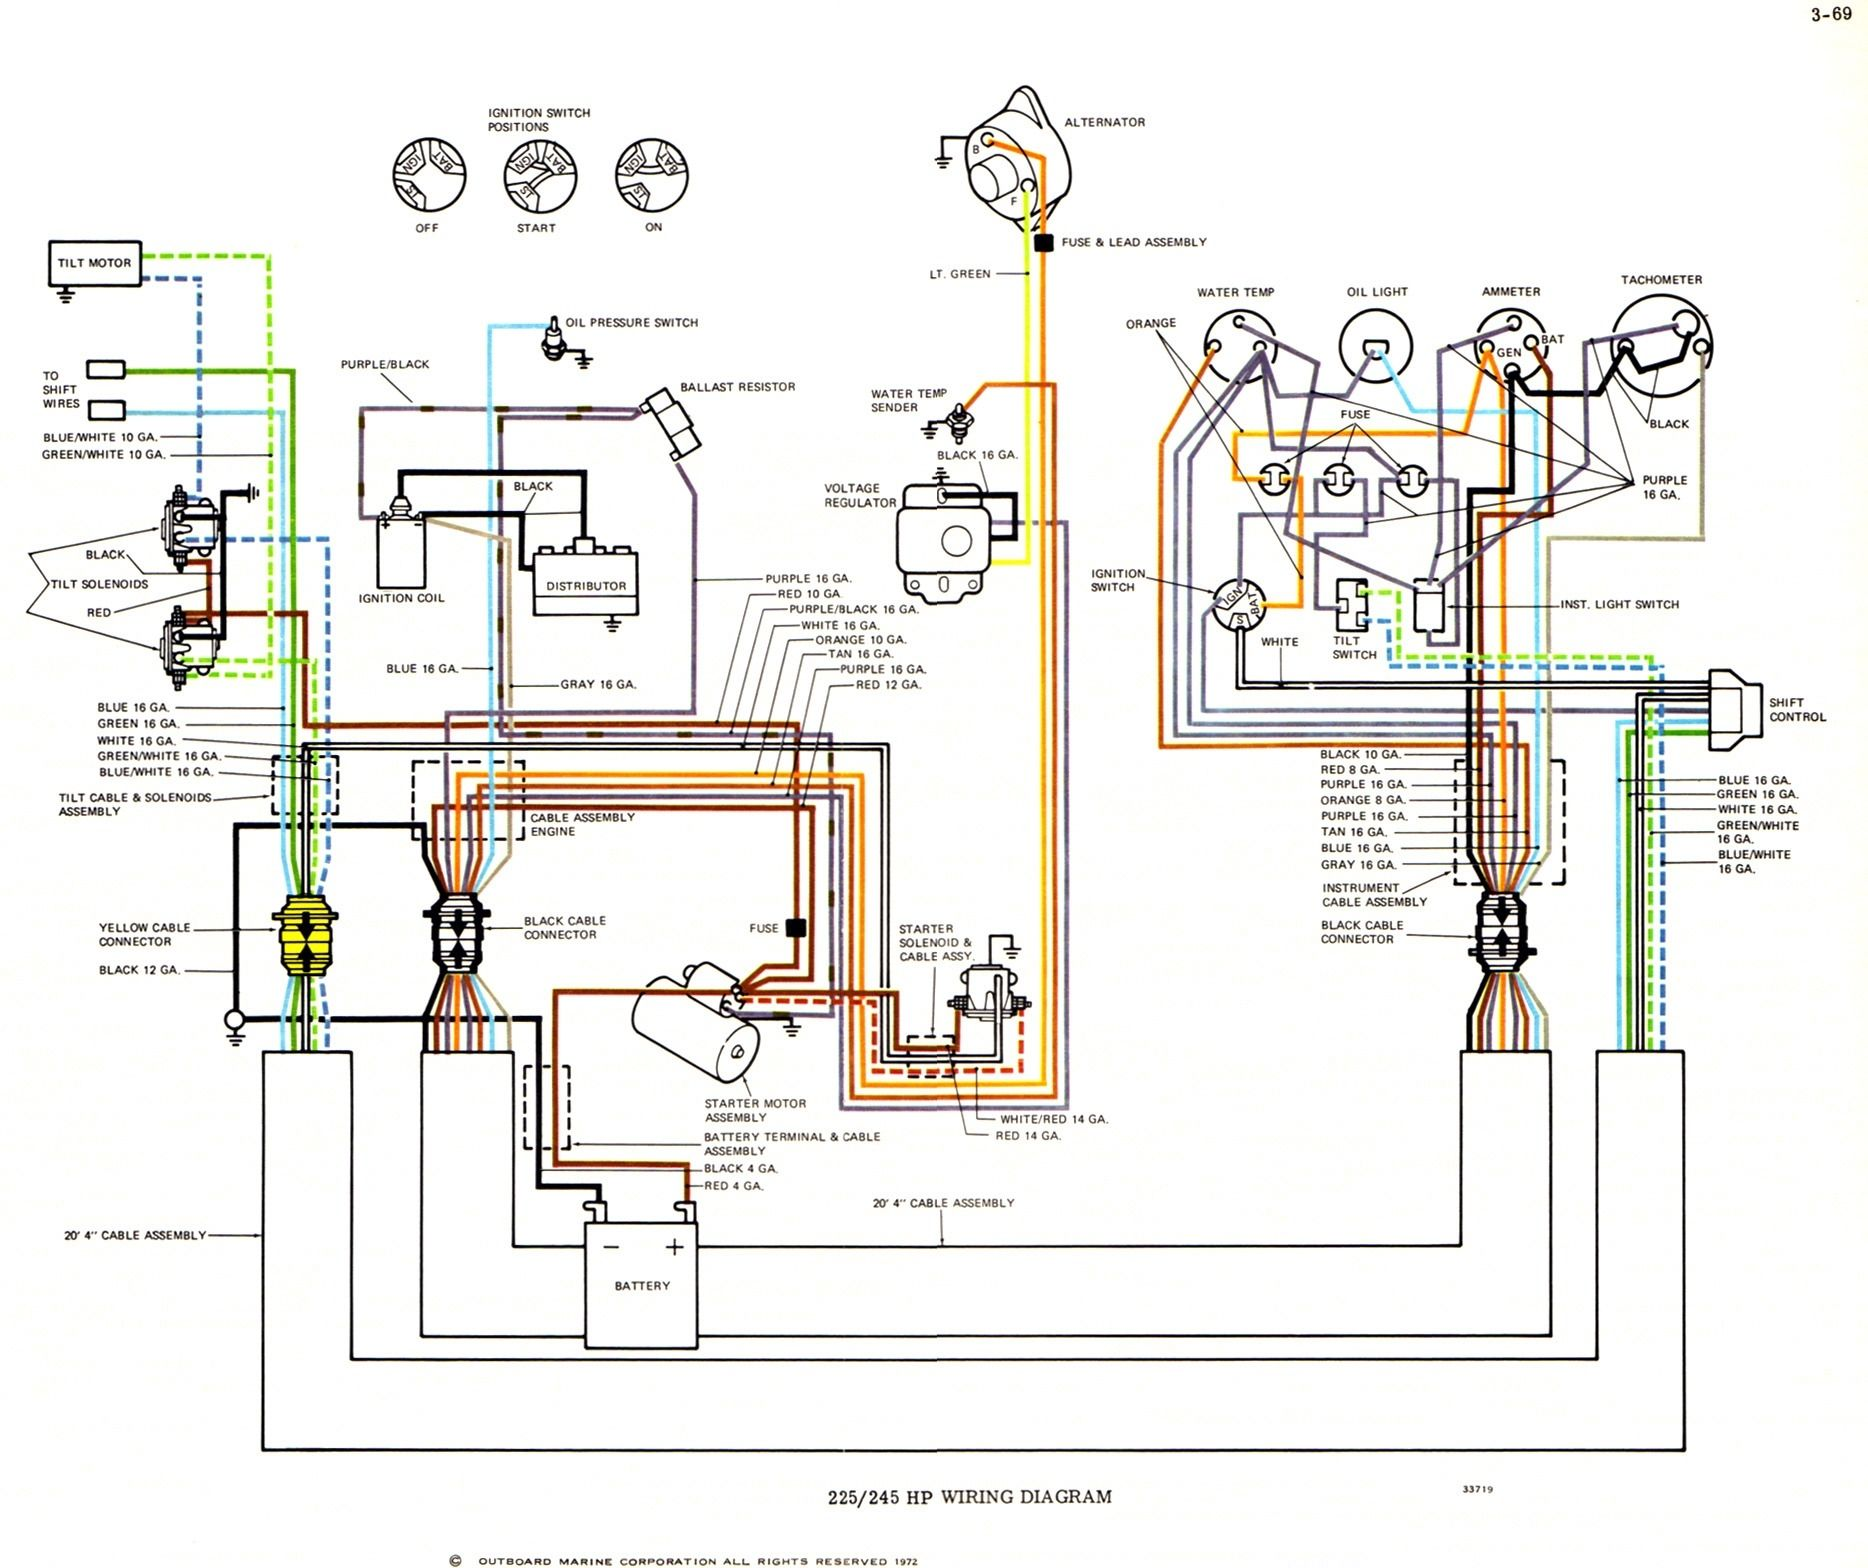 1972 mercruiser 120 wiring diagram wiring diagram datasource 120 mercruiser engine wiring diagram [ 1868 x 1568 Pixel ]